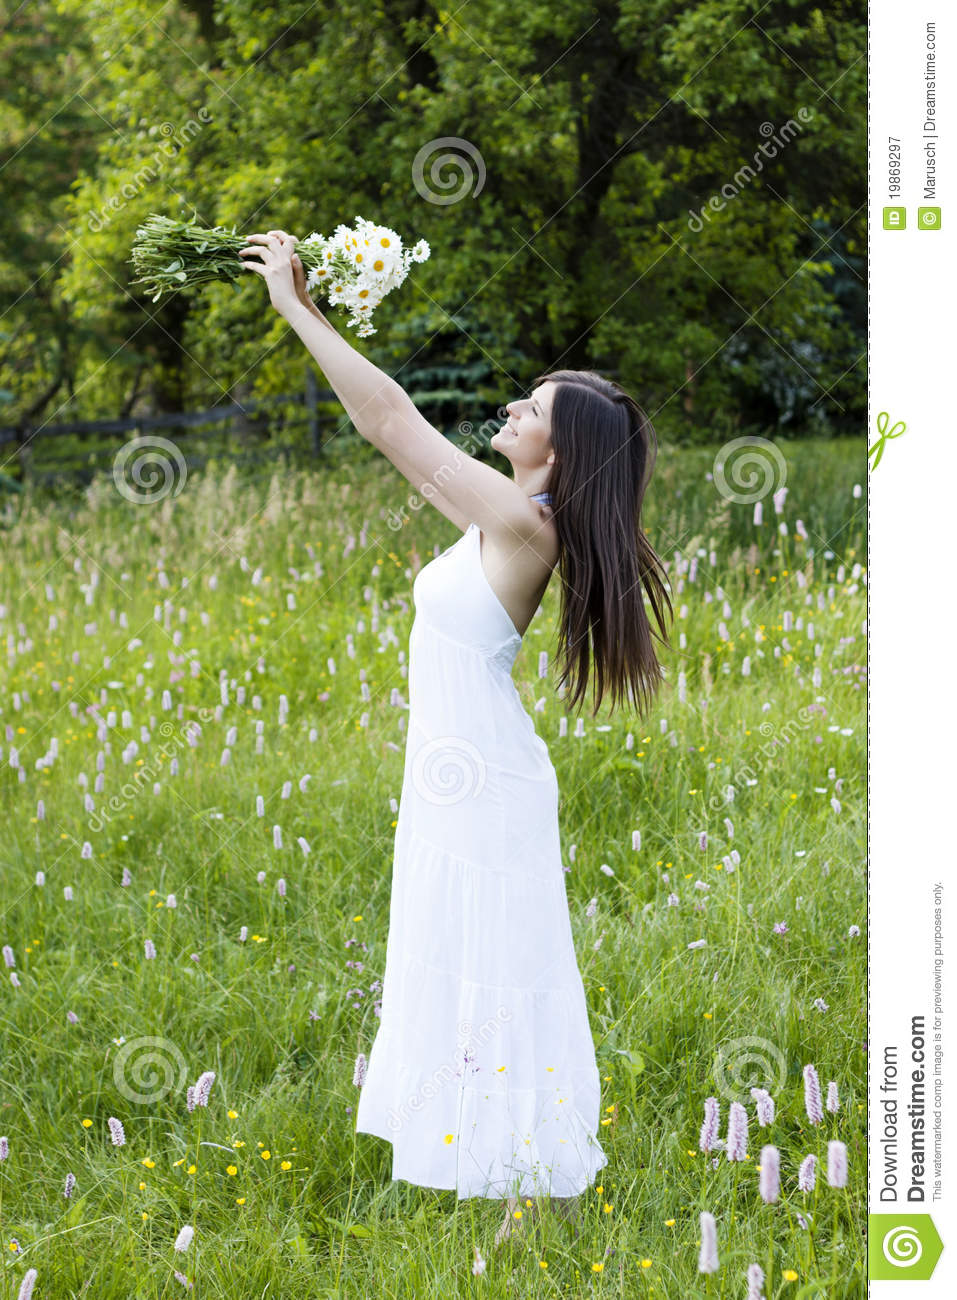 Beautiful Girl Holding Flowers In A Meadow Stock Image